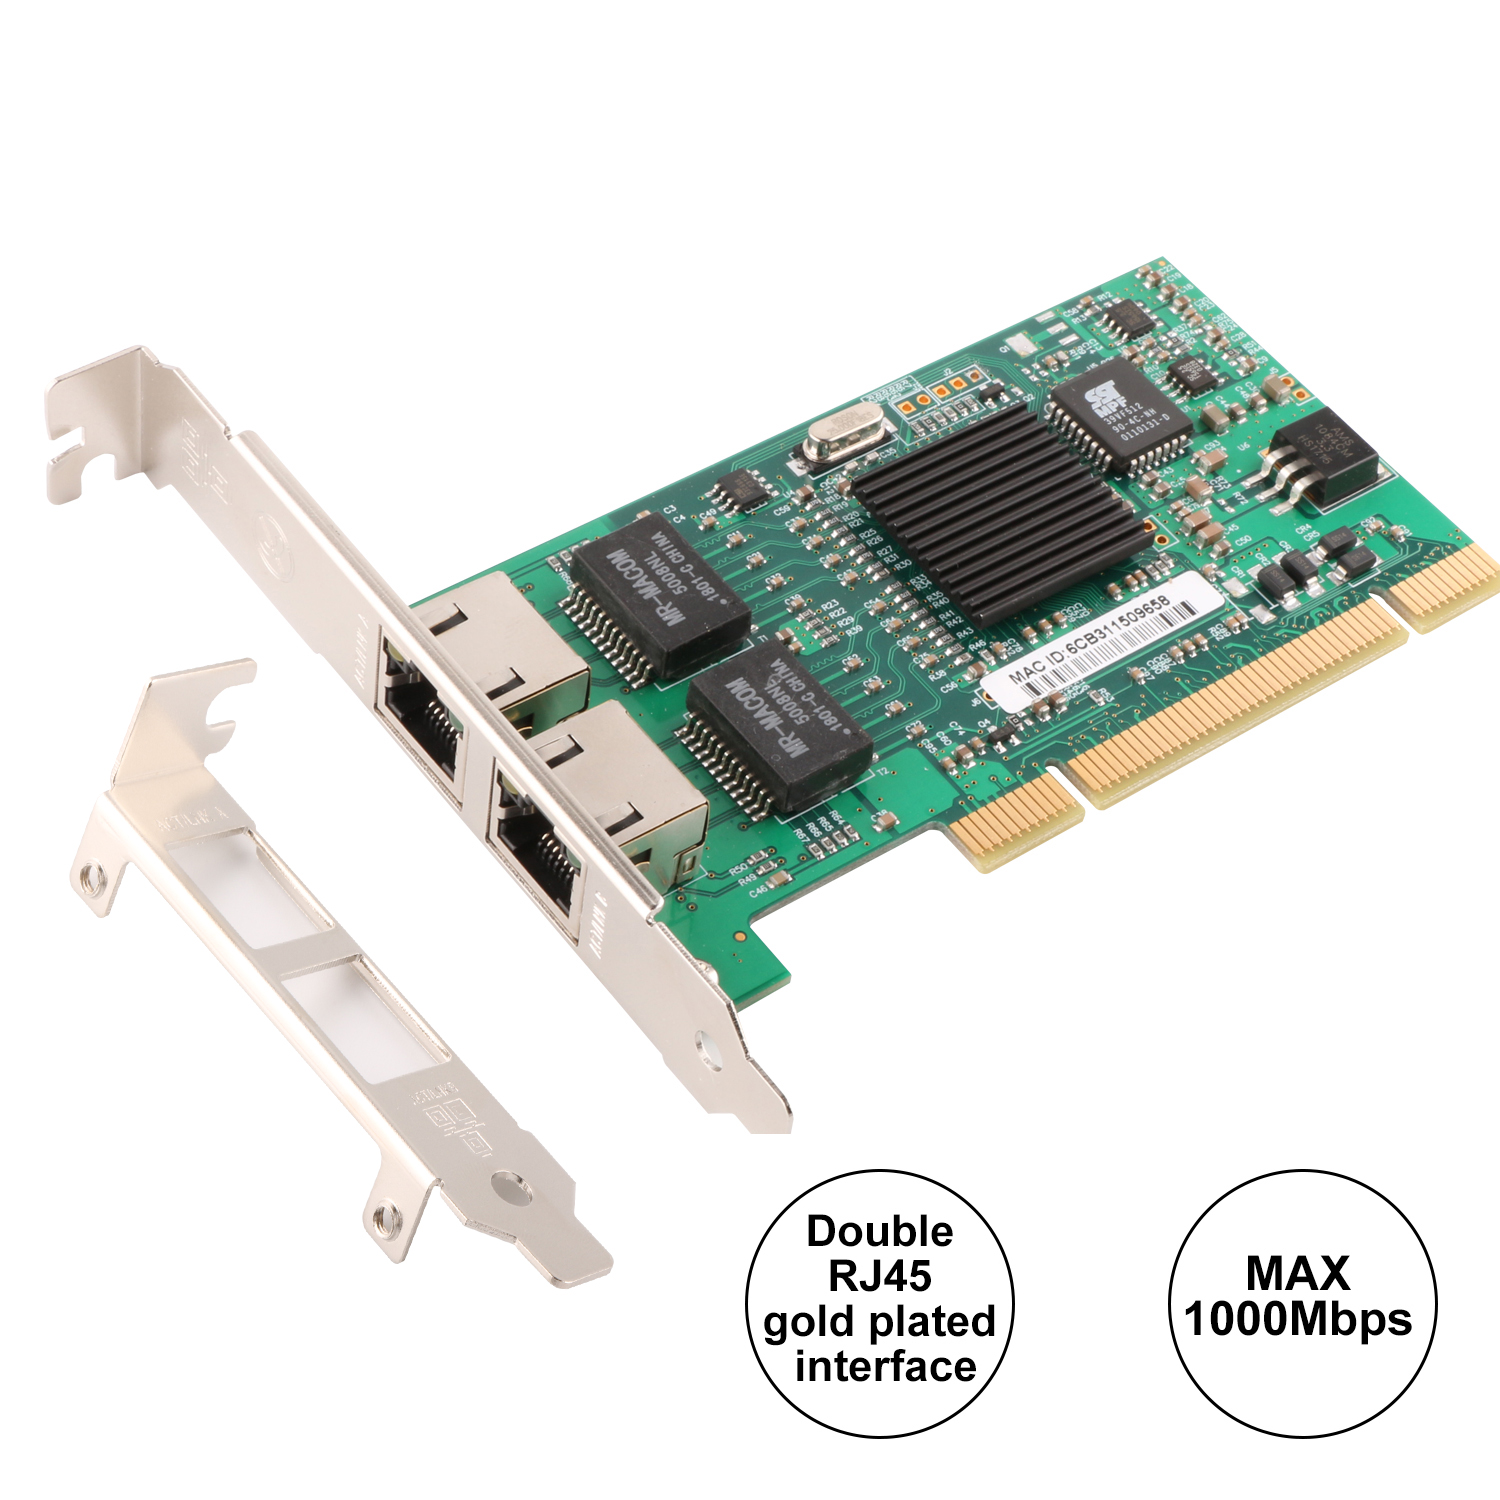 Ubit Intel 82546 PCI Gigabit for Ethernet Lan Network Card 10/100/1000Mbps Dual Port RJ45 Ethernet Adapter Converter